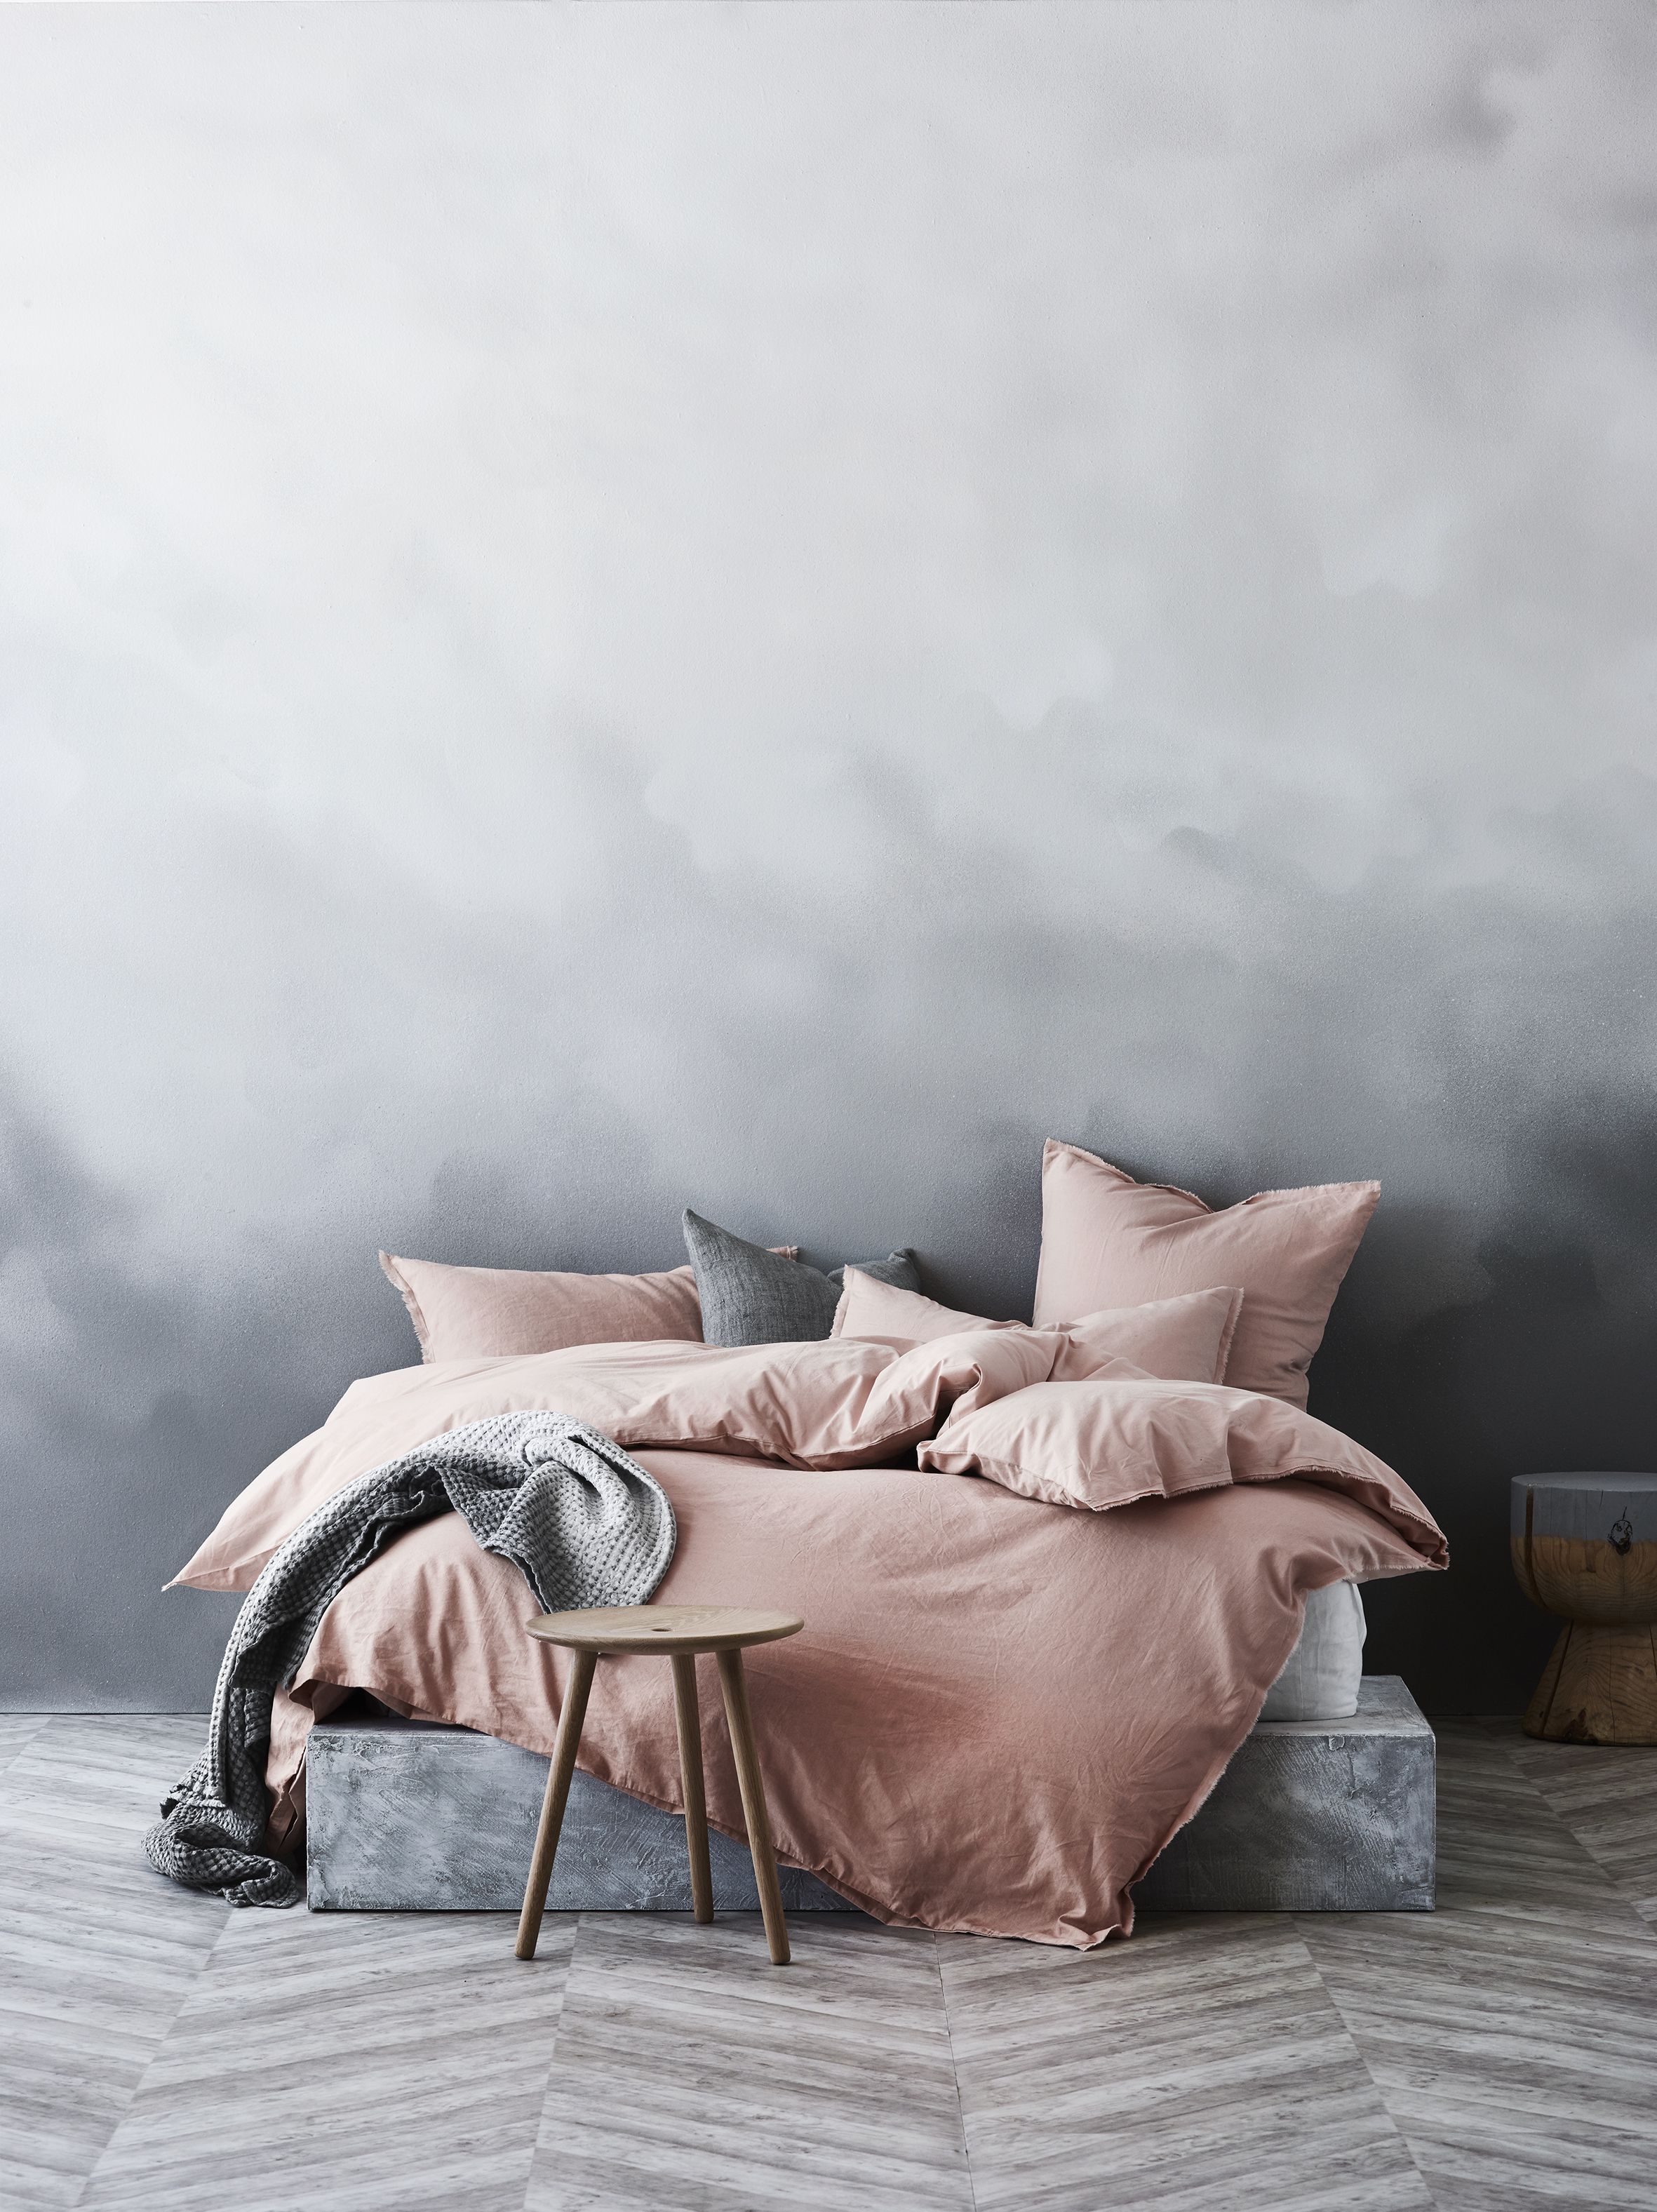 Good Maison Fringe Quilt Cover In Rose Dust, AURA Home, SS16 17 Collection